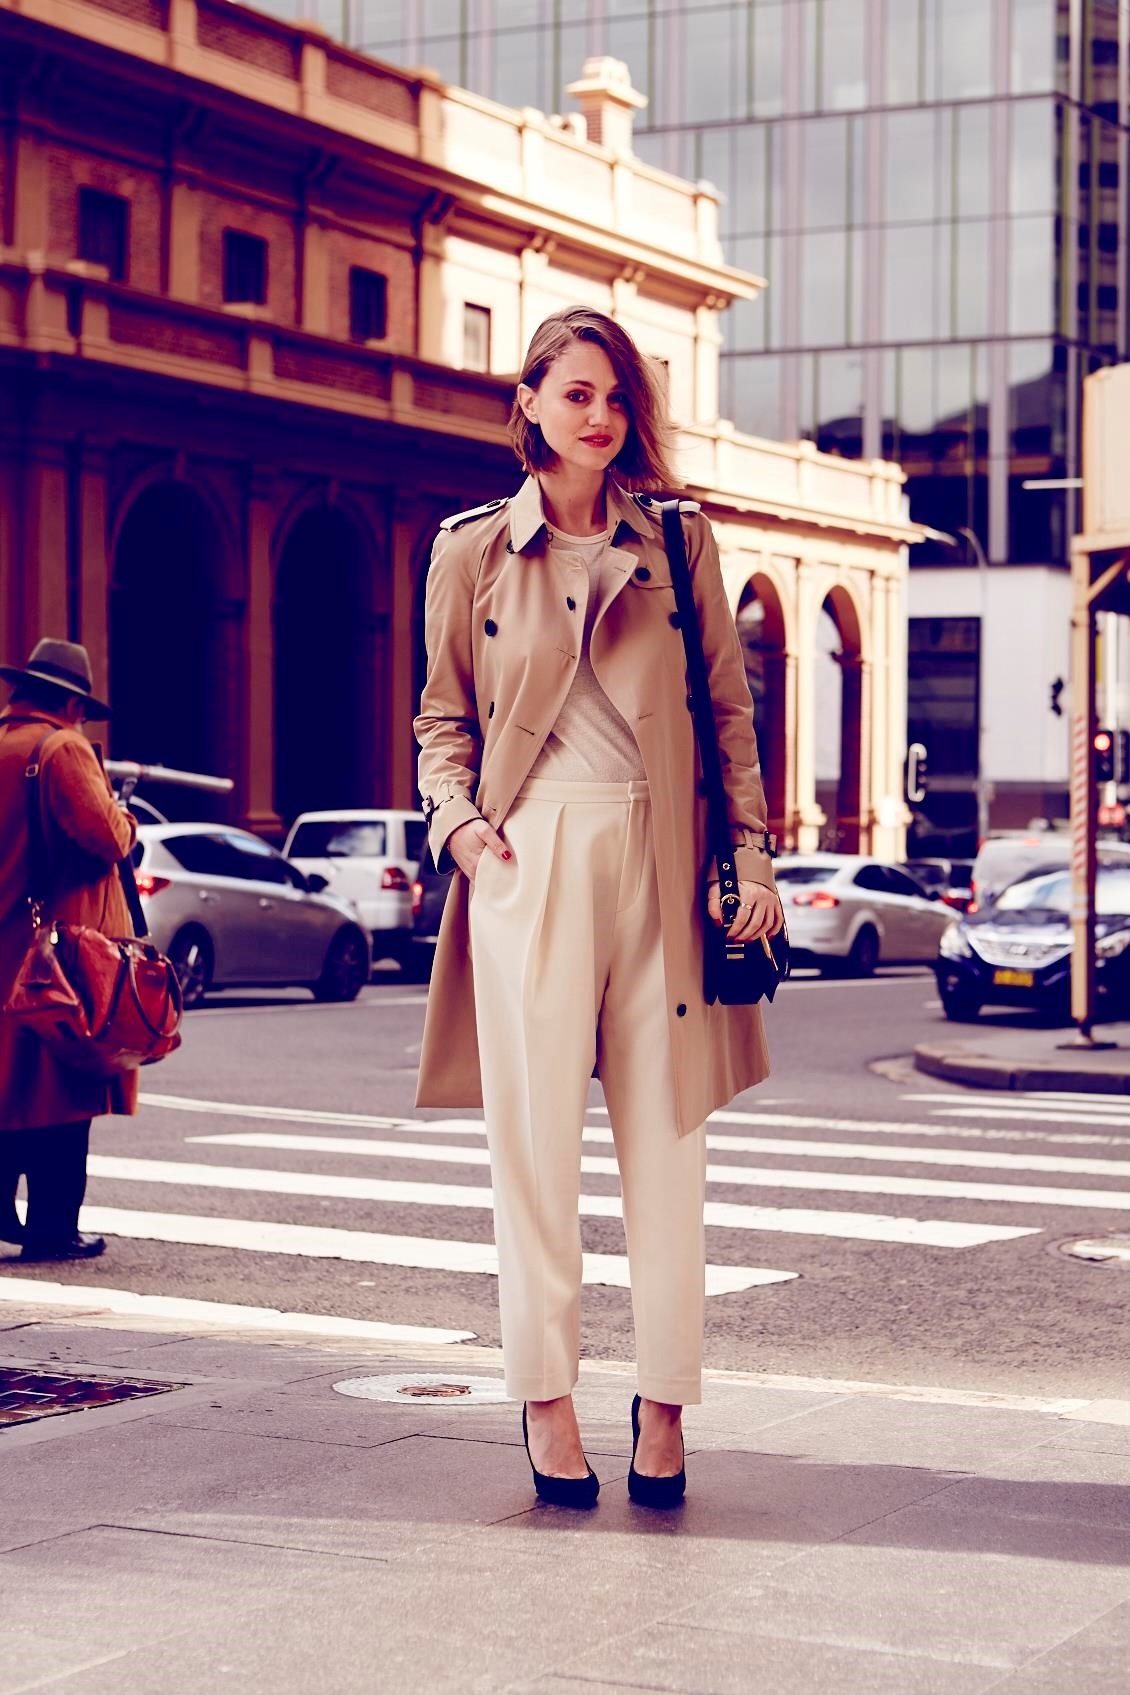 "<strong>DEE JENNER MARKET EDITOR</strong><br> WEARS: <strong>The Kensington </strong><br> (modern fit, tapered waist, slim sleeves)<br><br> ""As the trench is such a classic piece, I've gone with cream on cream to keep the outfit polished but fresh. Linen tees are my new obsession and I think opting for one instead of a button-up shirt makes the traditional trench seem a touch more youthful. Simple black and gold accessories pull it all together.""<br><br> Trench, $2,495, Burberry, burberry.com; tee, $29.95, trousers, $69.95, both H&M, hm.com/au; heels, $526, Sergio Rossi, stylebop.com; bag, $2,695, Salvatore Ferragamo, 1300 095 224"